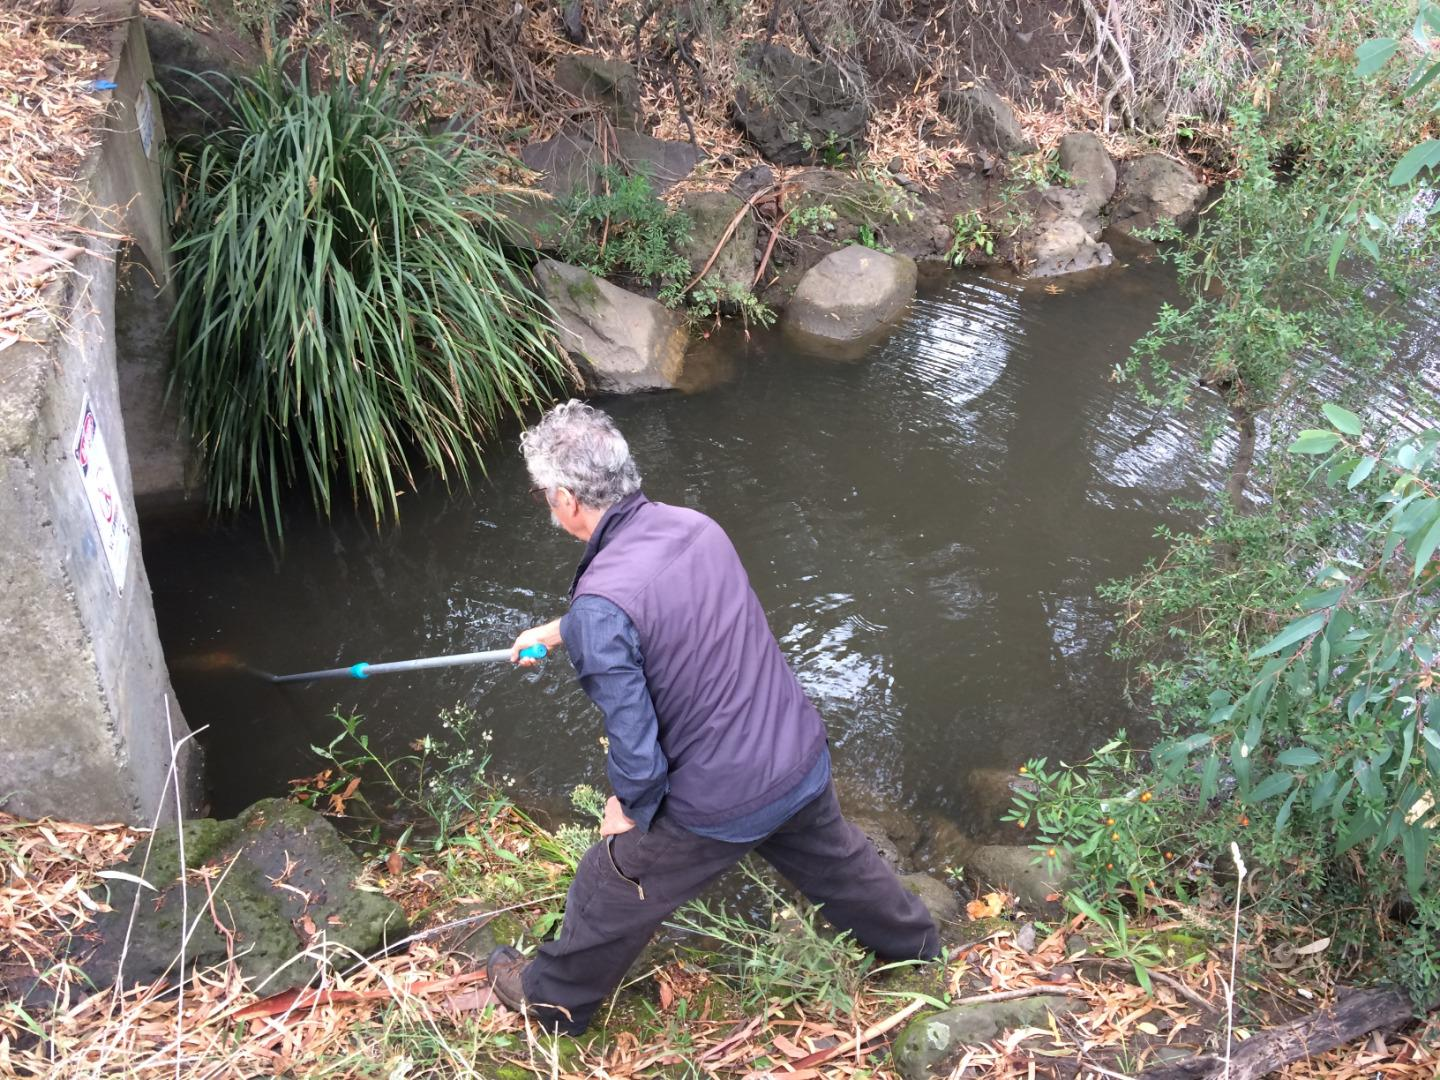 Sample taking from drain into Darebin Creek downstream from Murry Road Bridge